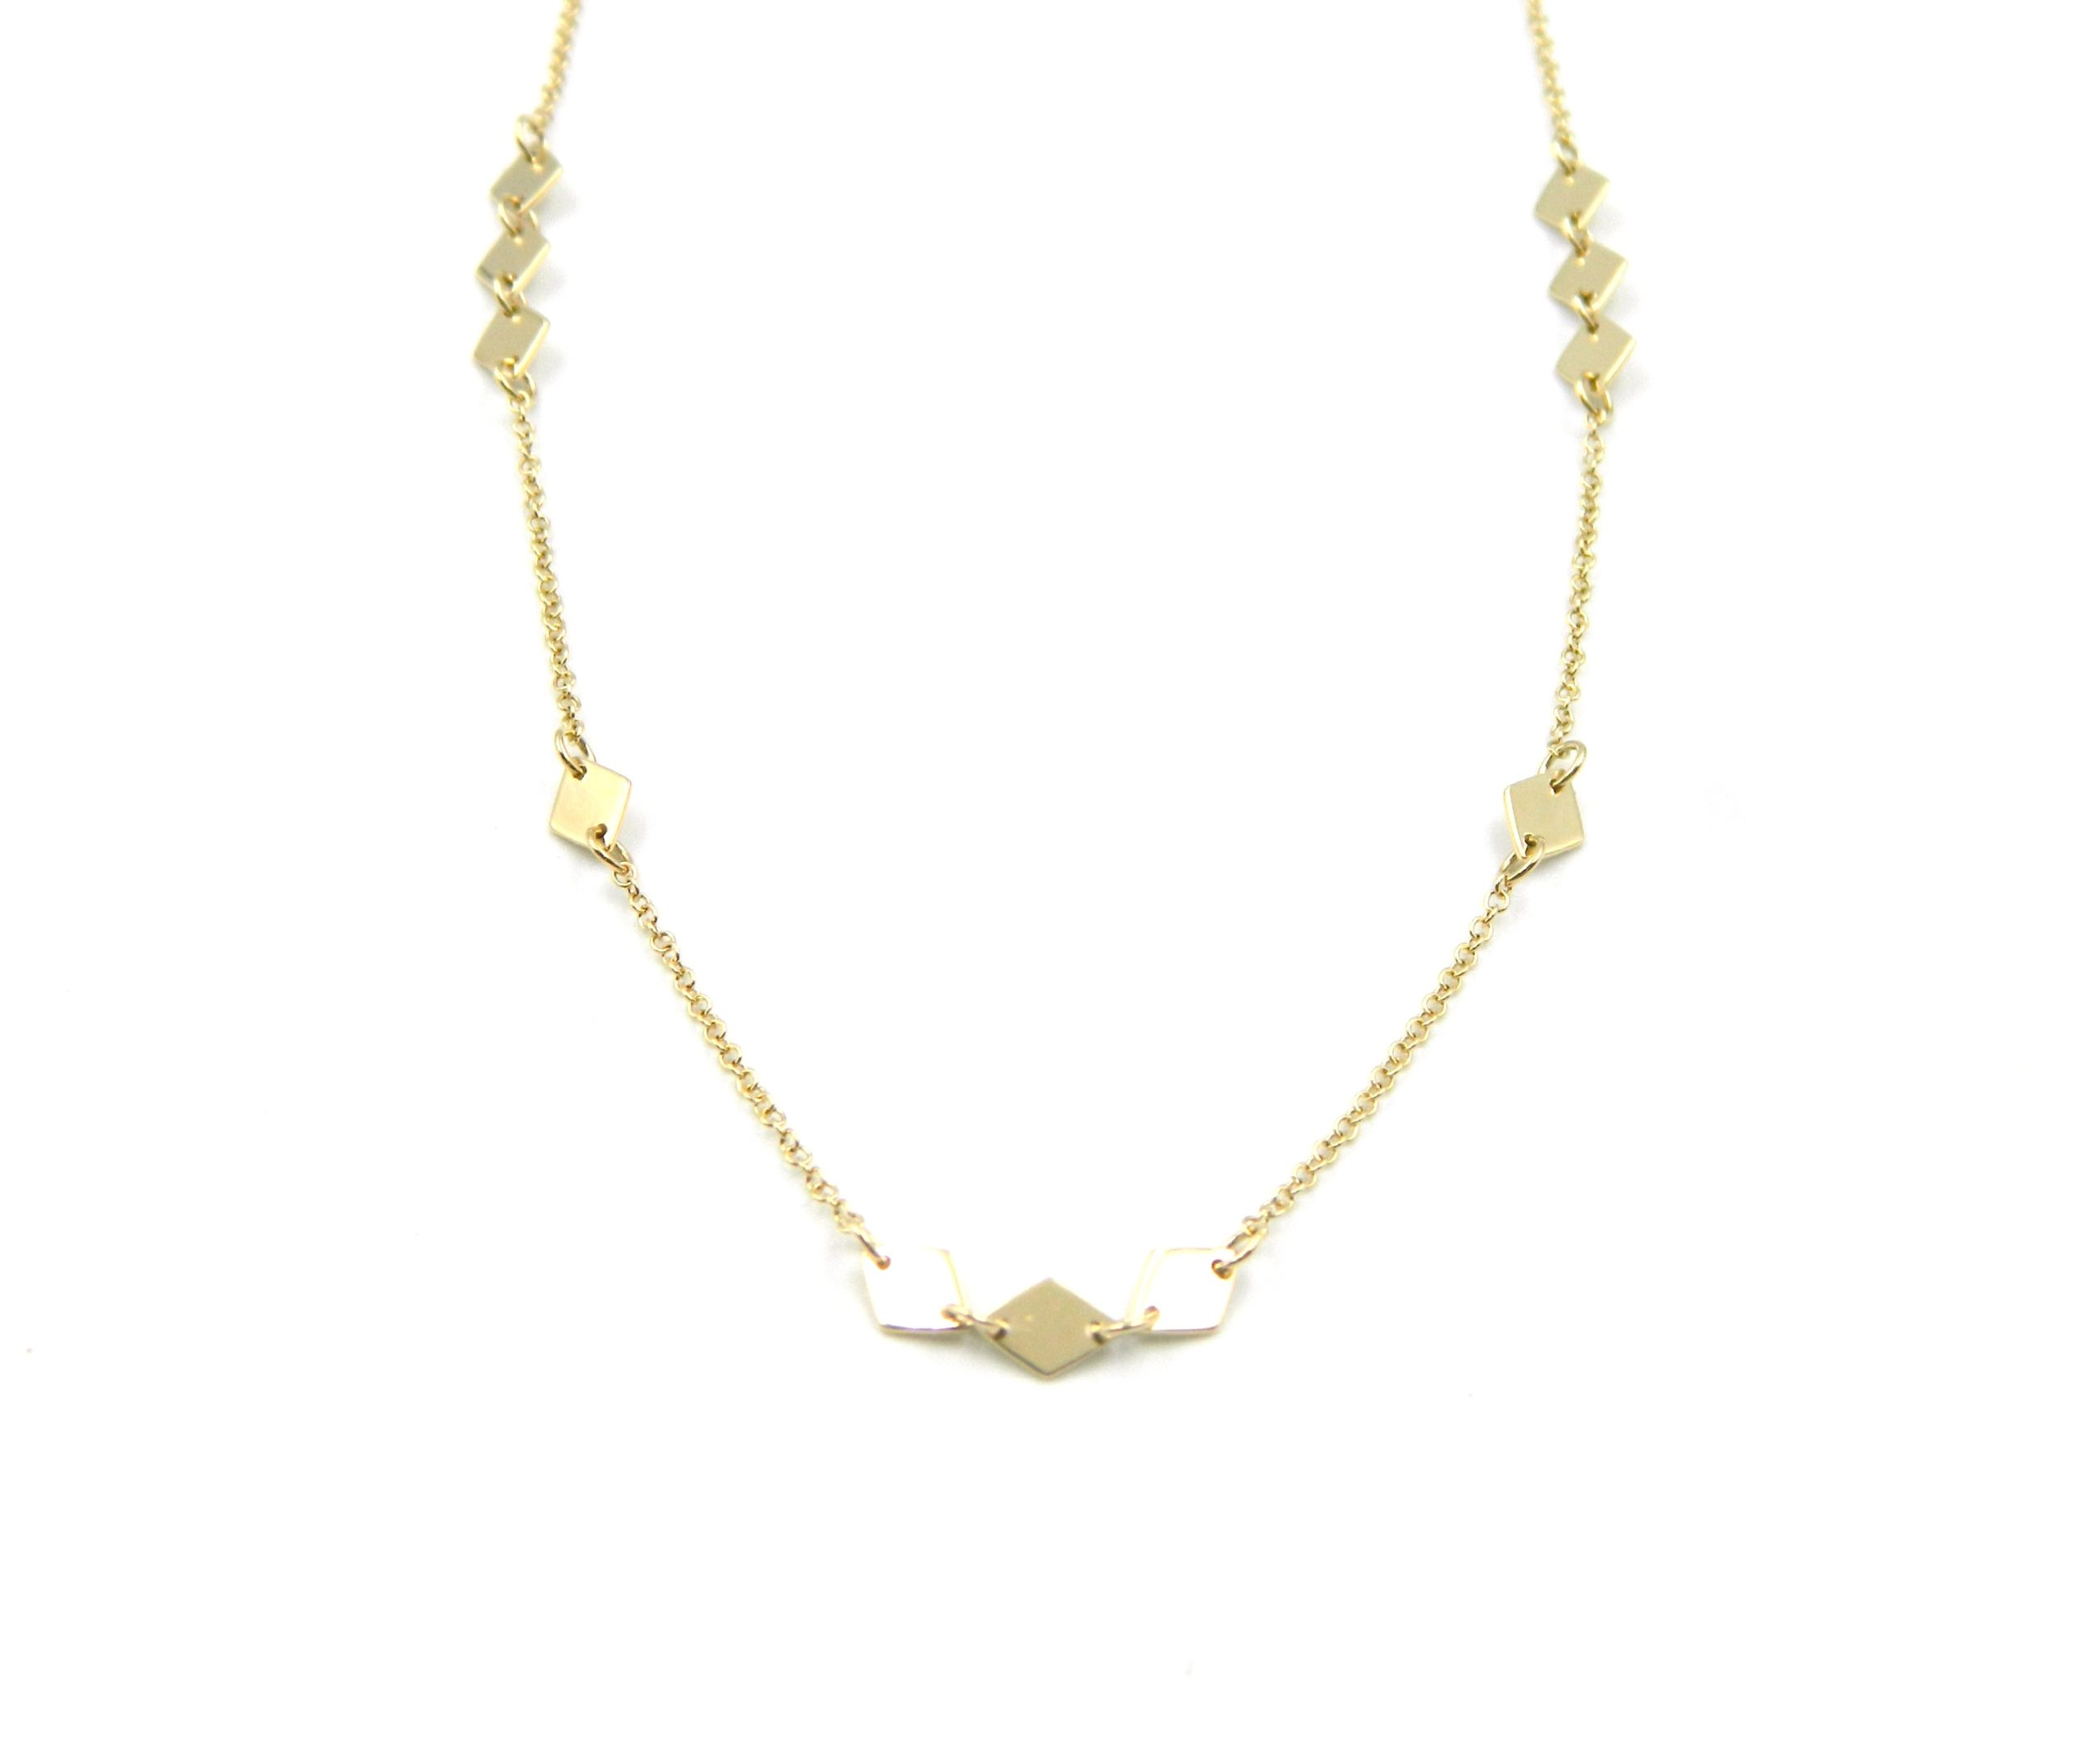 Yellow Gold Station Necklace